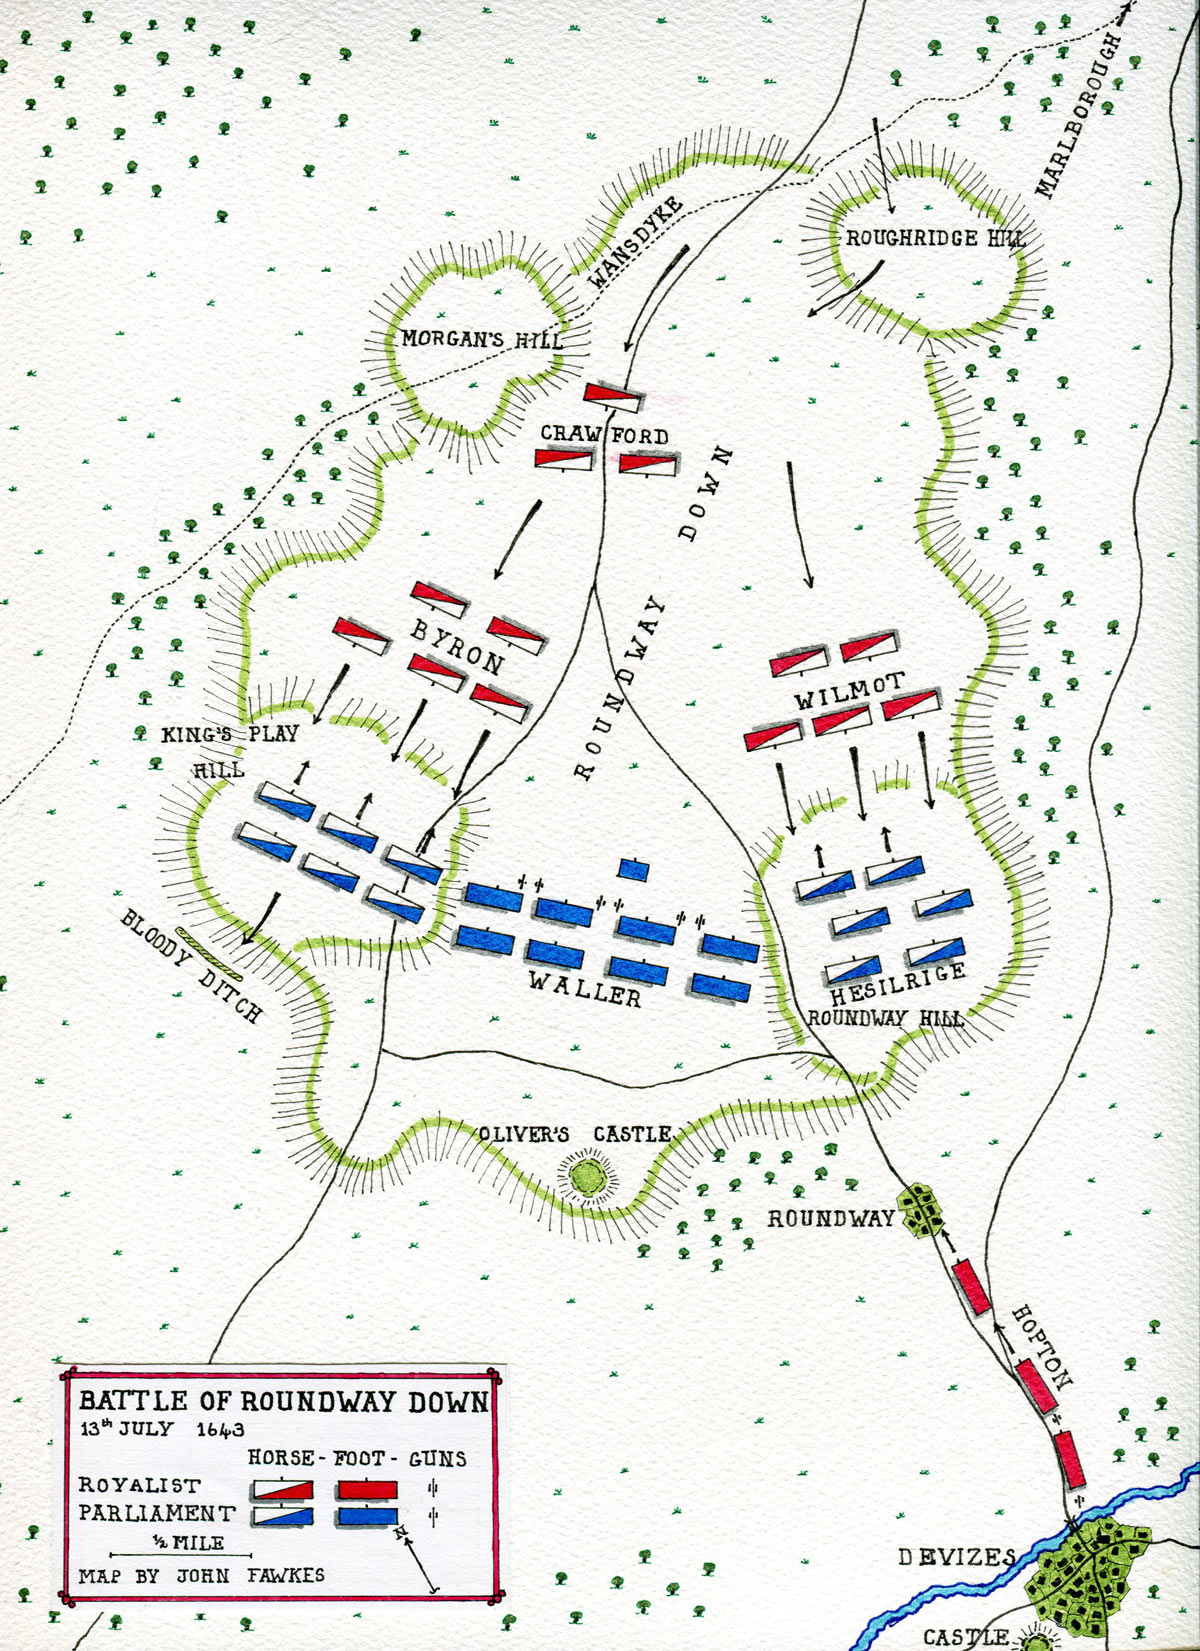 Map of Battle of Roundway Down fought on 13th July 1643 during the English Civil War: map by John Fawkes